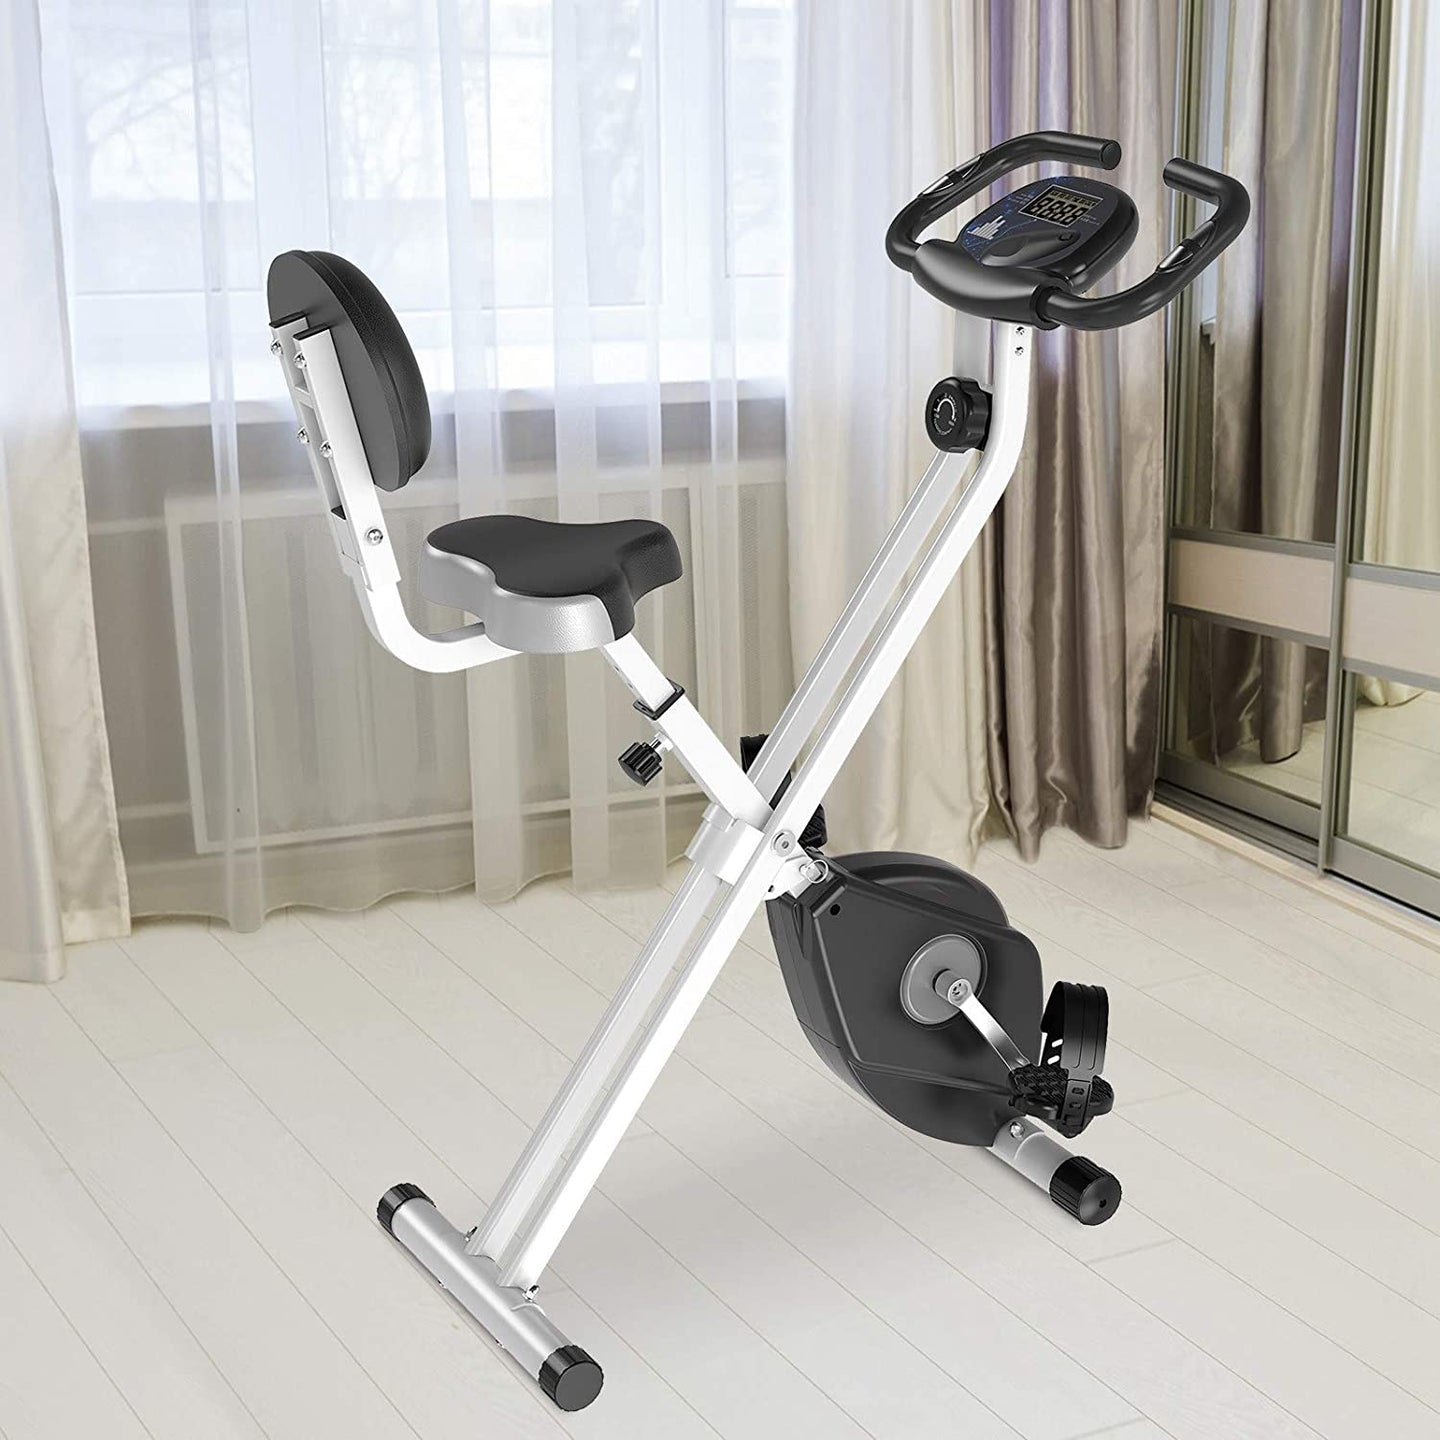 HOMCOM Magnetic Resistance Exercise Bike